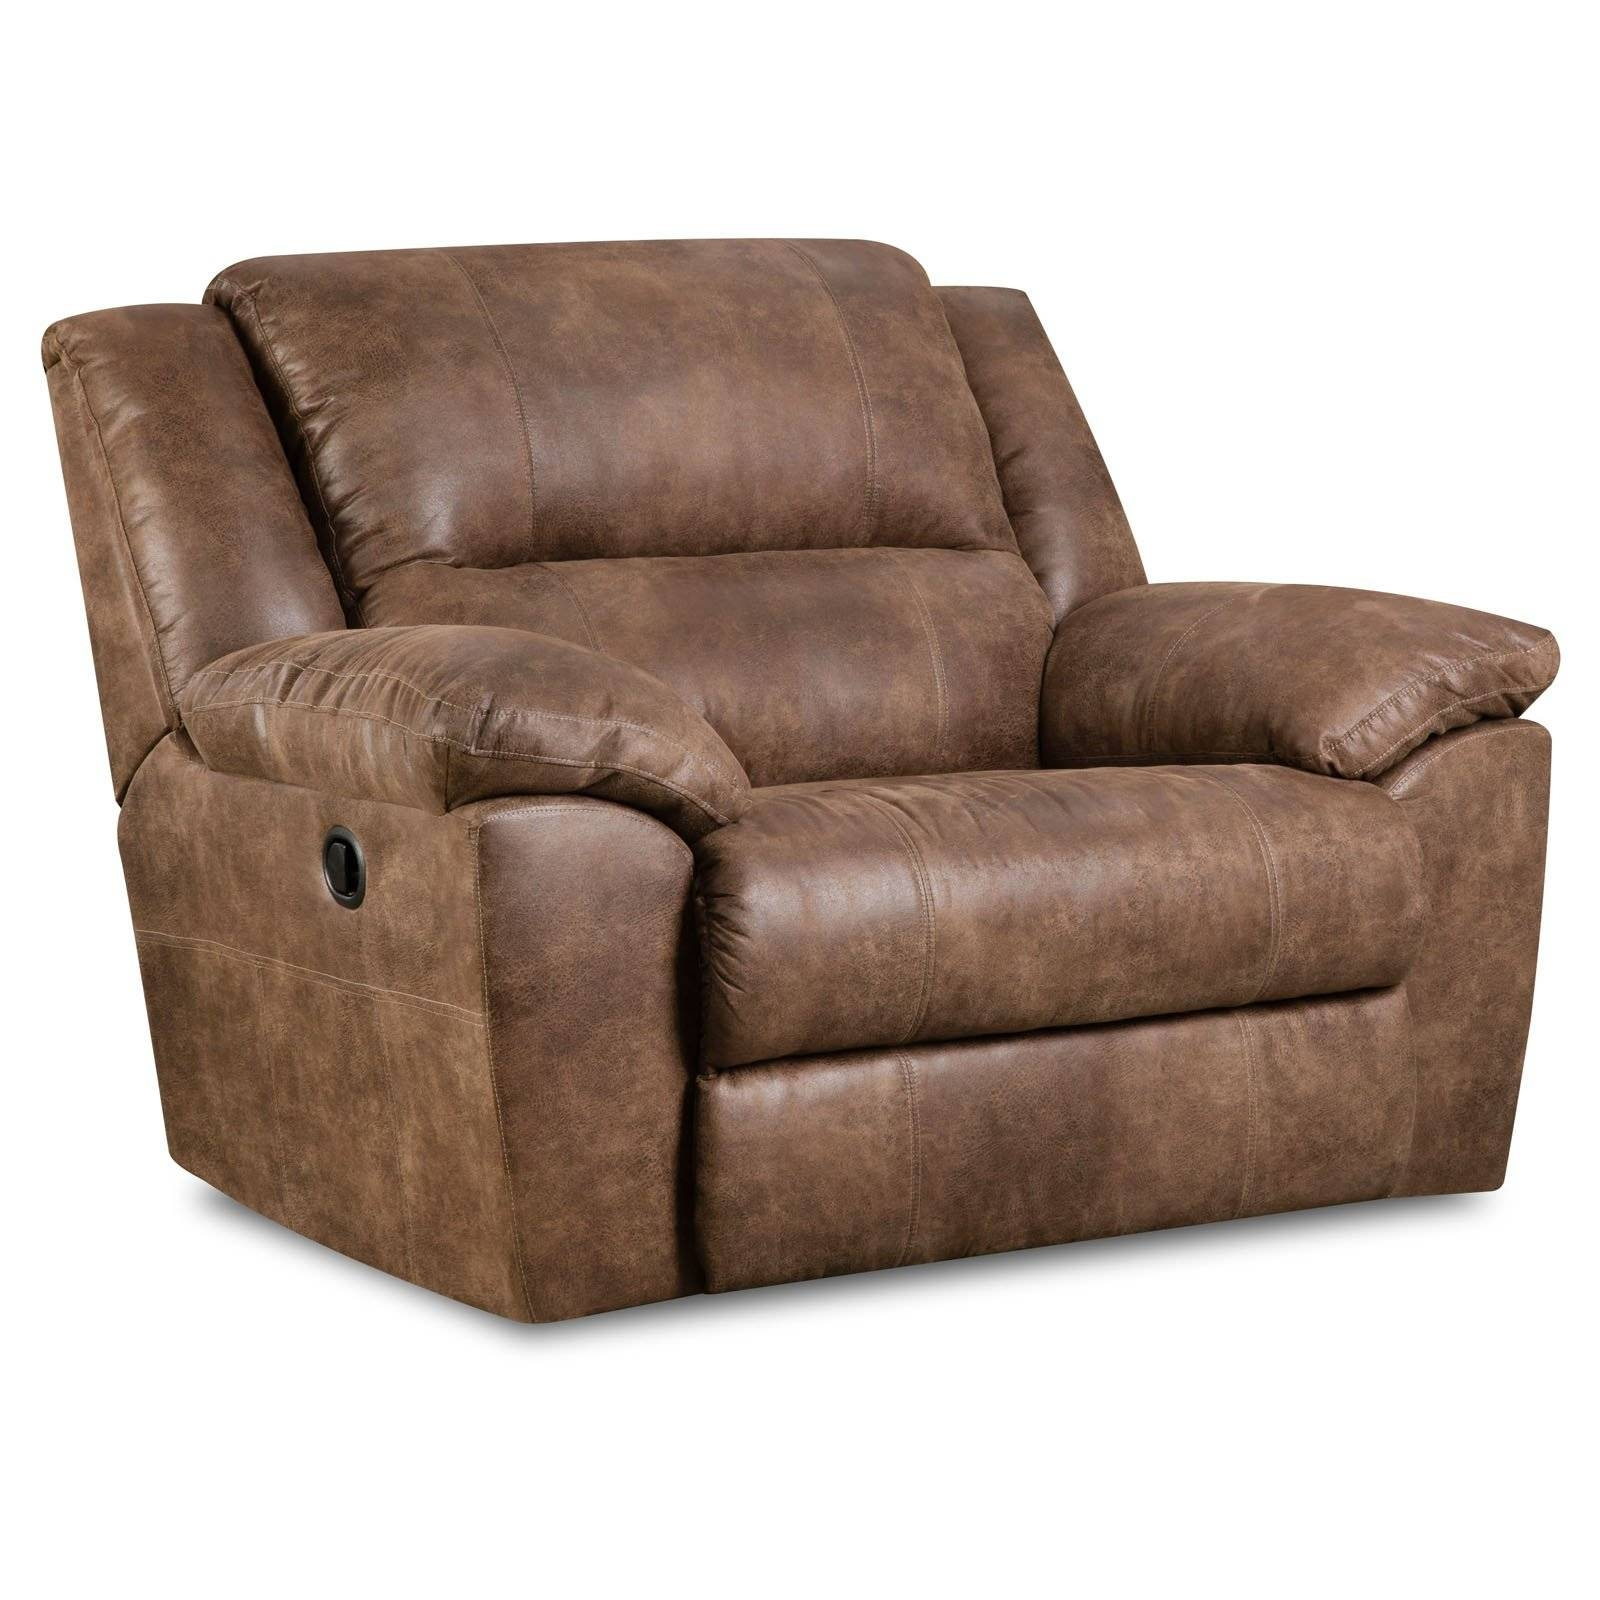 Furniture: Excellent Simmons Upholstery Sofa For Comfortable Pertaining To Simmons Microfiber Sofas (View 9 of 15)